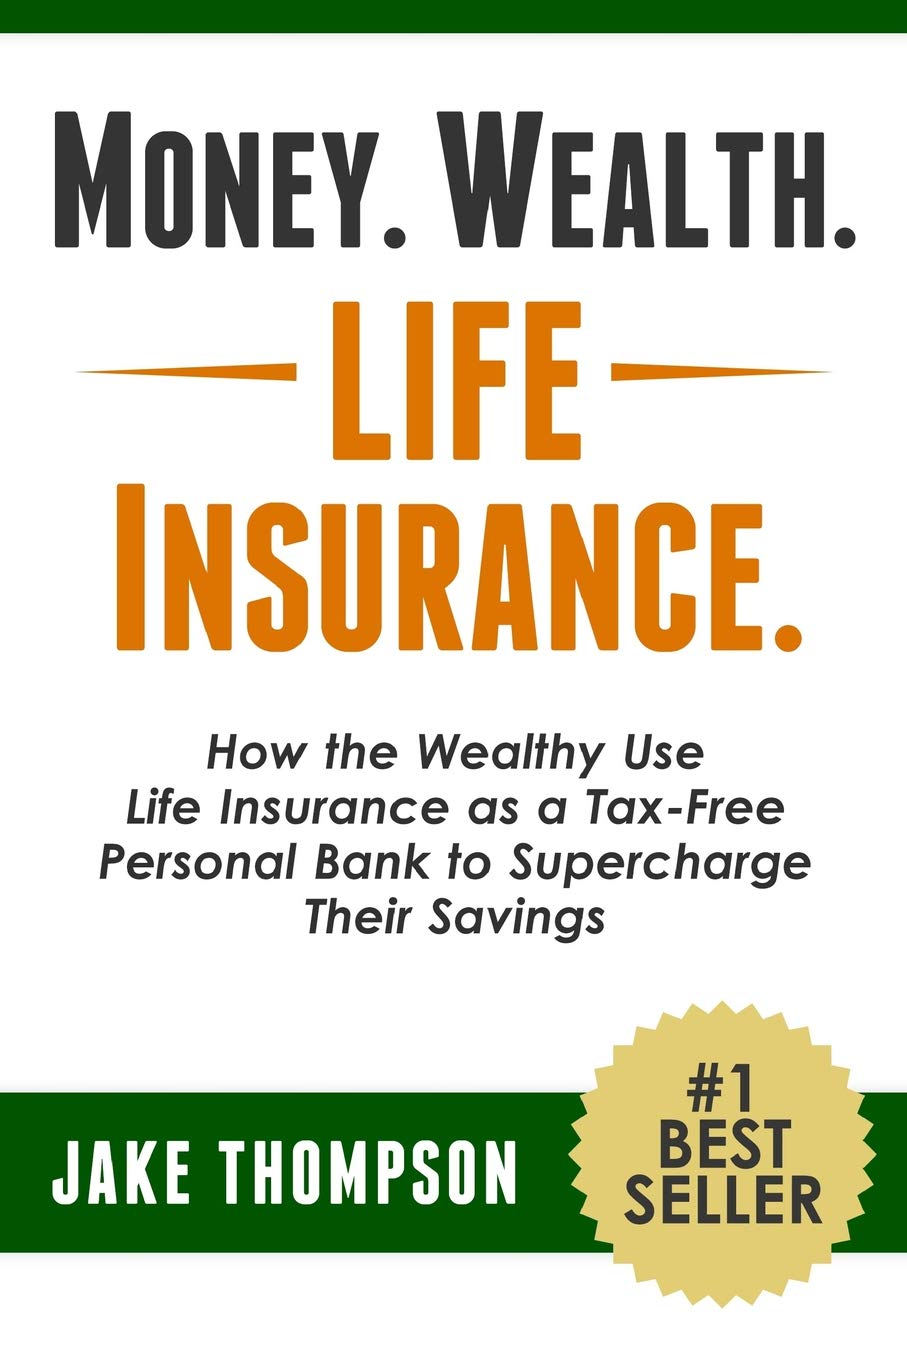 Money. Wealth. Life Insurance.: How the Wealthy Use Life Insurance as a Tax-Free Personal Bank to Supercharge Their Savings - Tolerant Planet